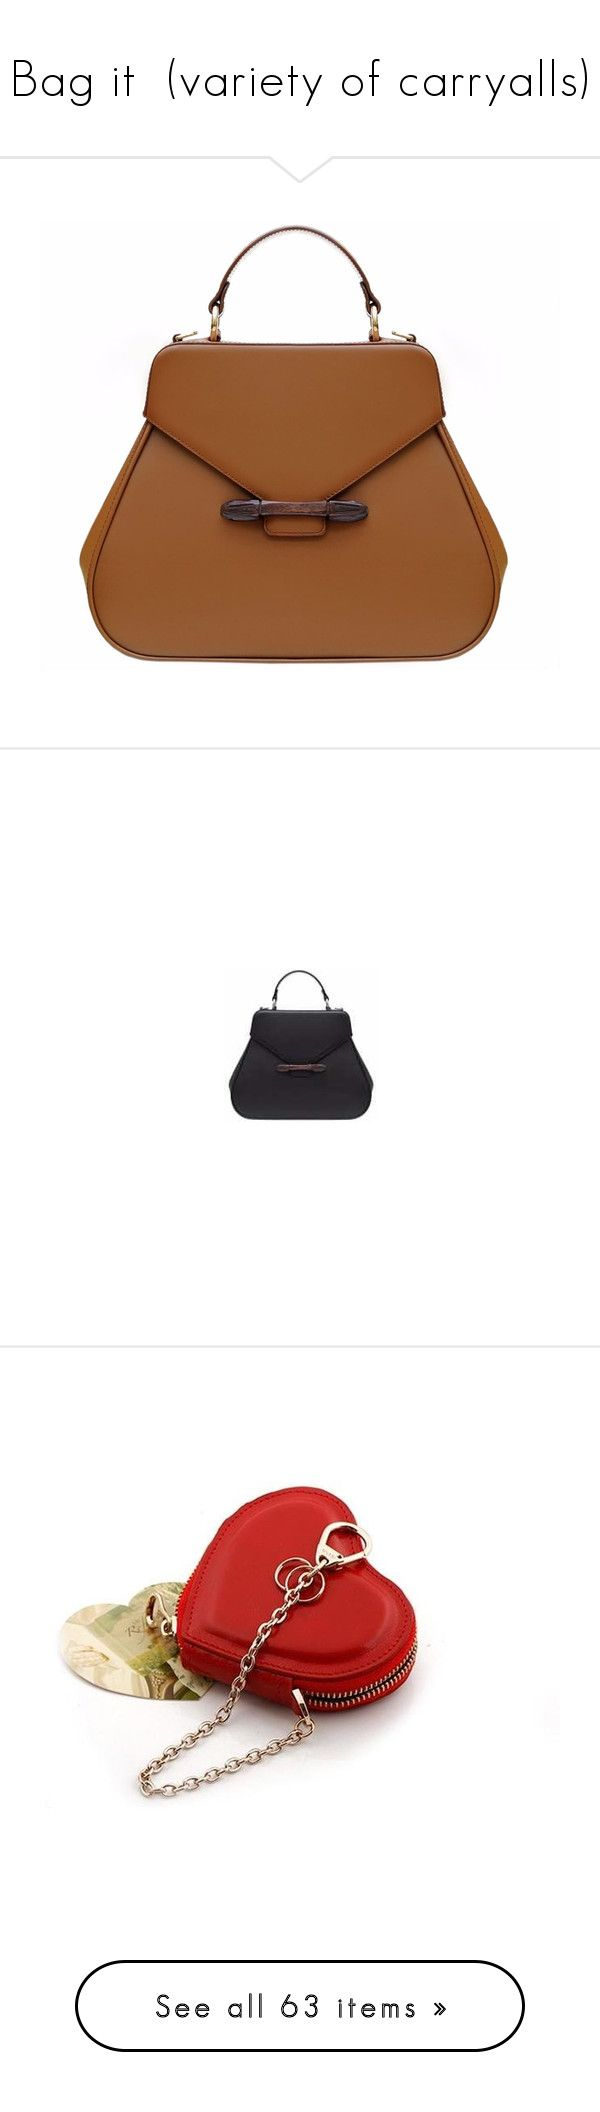 """""""Bag it  (variety of carryalls)"""" by idetached ❤ liked on Polyvore featuring bags, handbags, tote bags, tan tote, brown tote handbags, wooden purse, tan purse, tan handbags, wood purse and wood tote"""